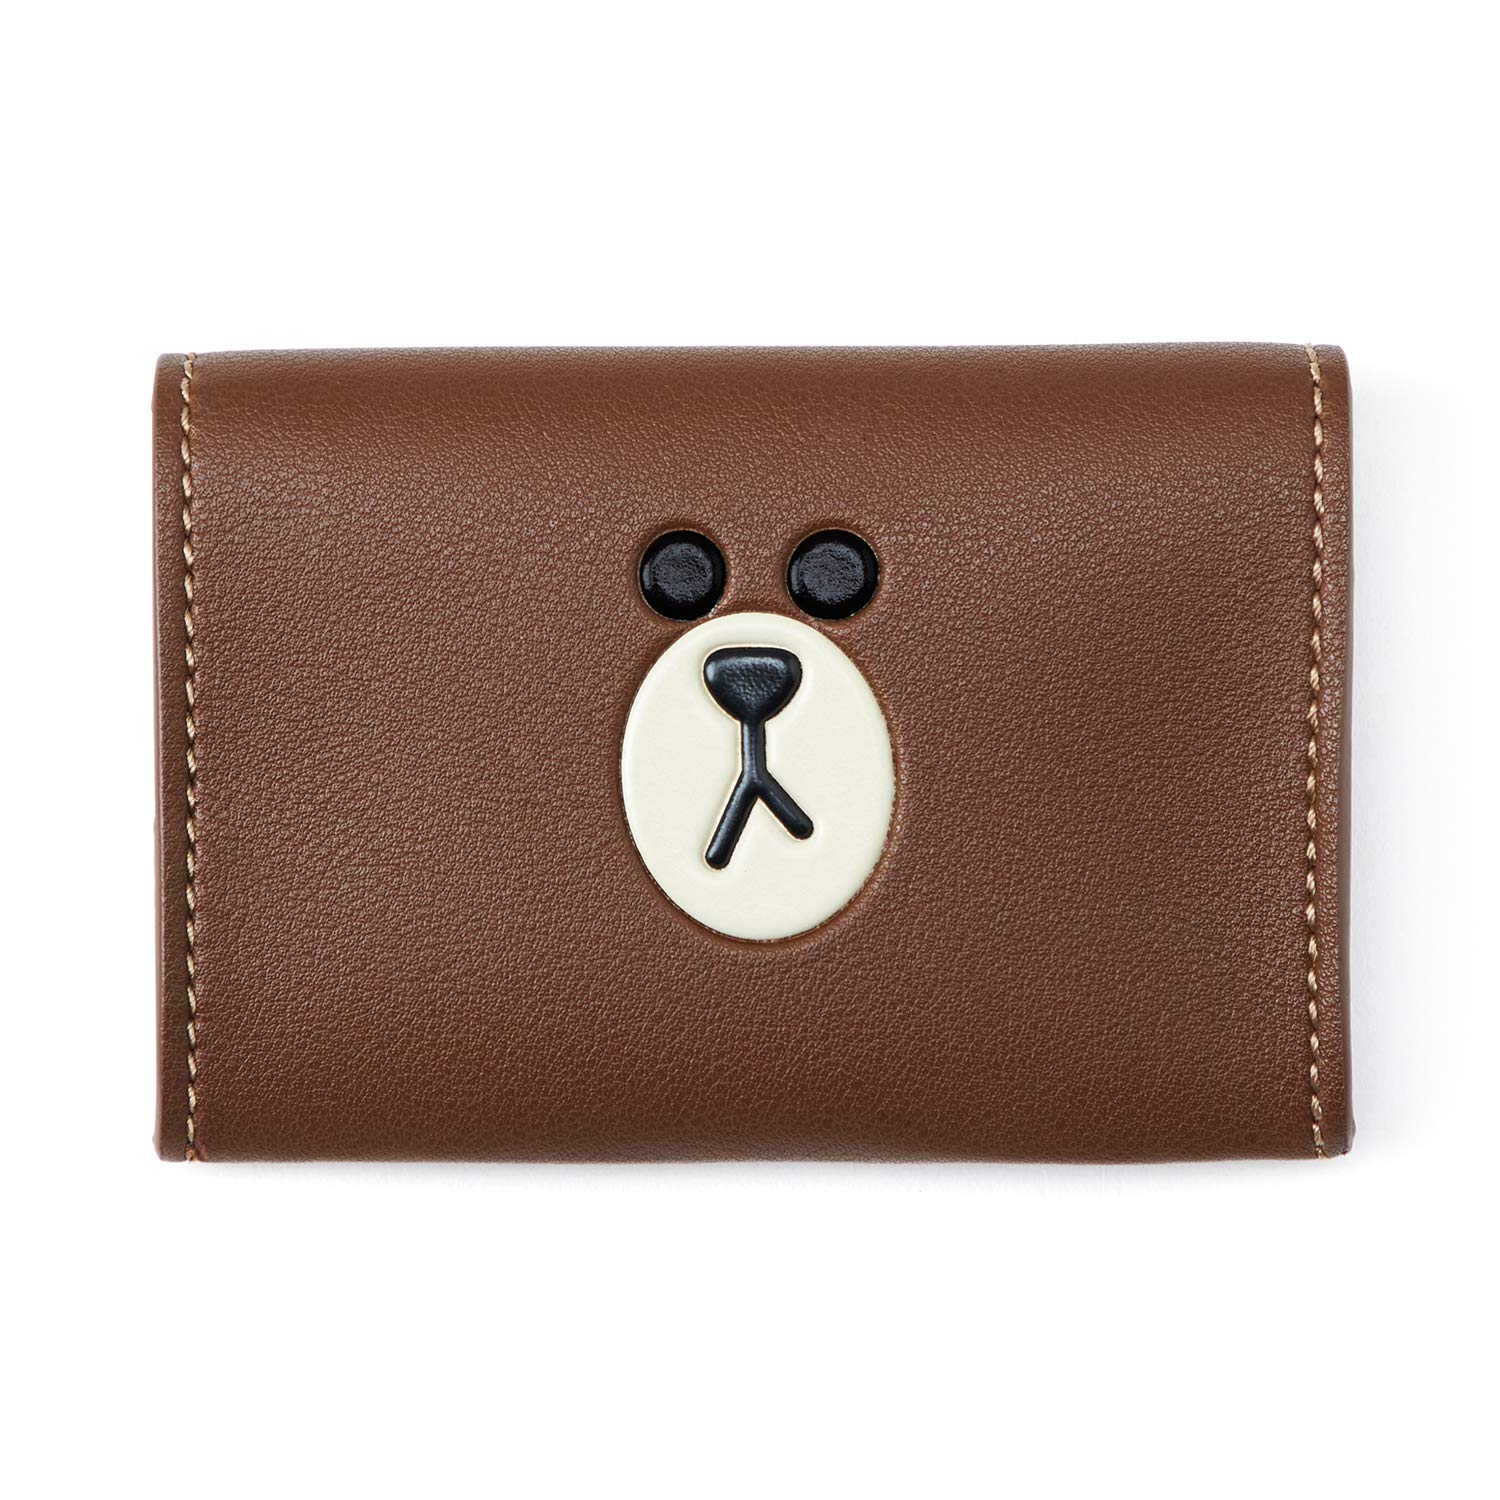 Line Friends Business Card Holder - BROWN Character Design Faux Leather Organizer Case and Wallet, Brown by LINE FRIENDS